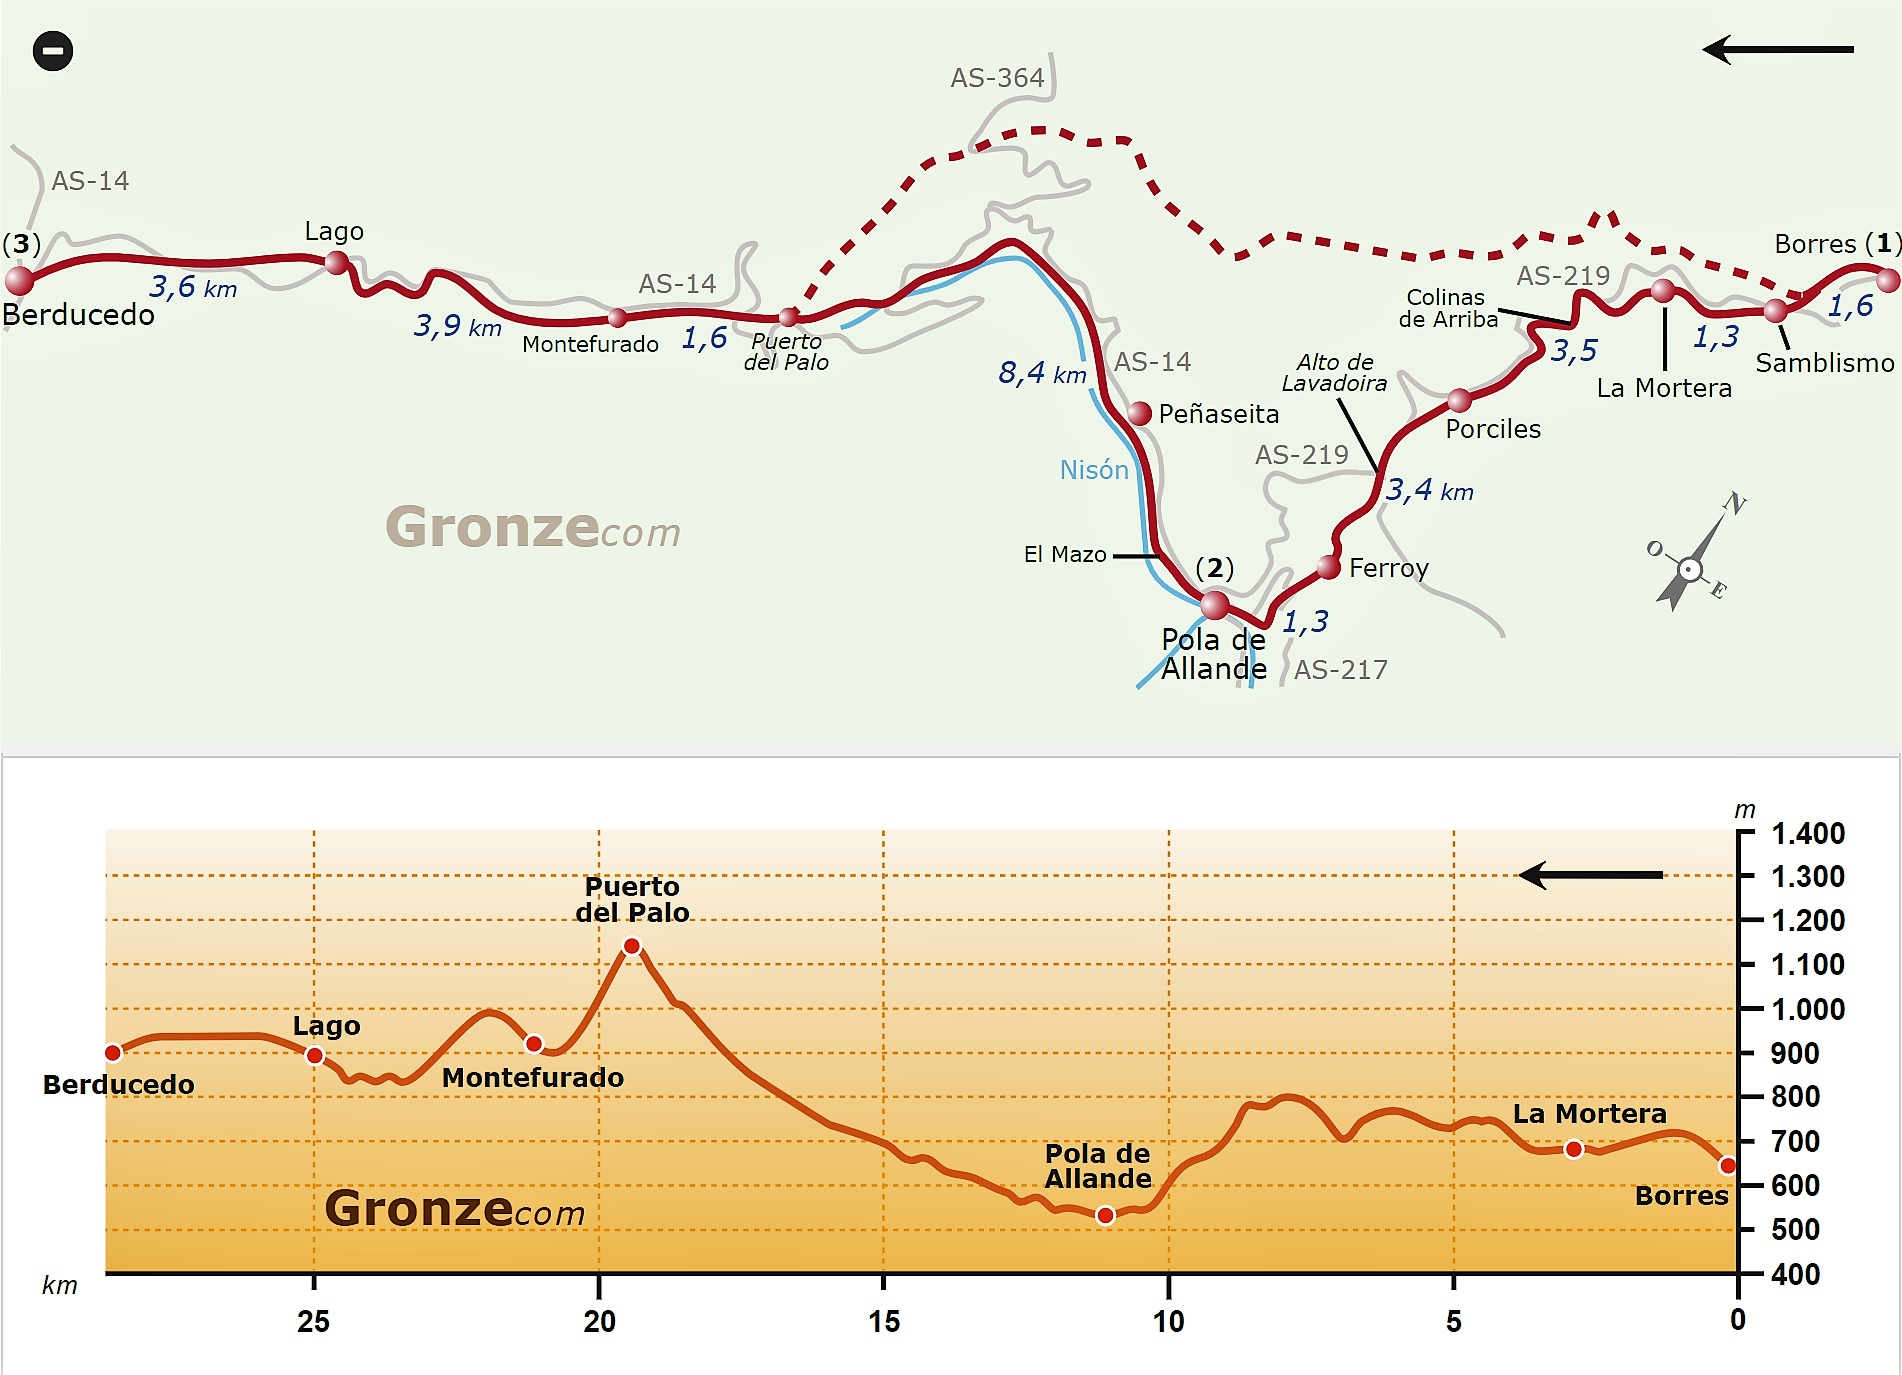 Map and Elevation Profile of Pola de Allande Route, Borres to Berducedo, Camino Primitivo